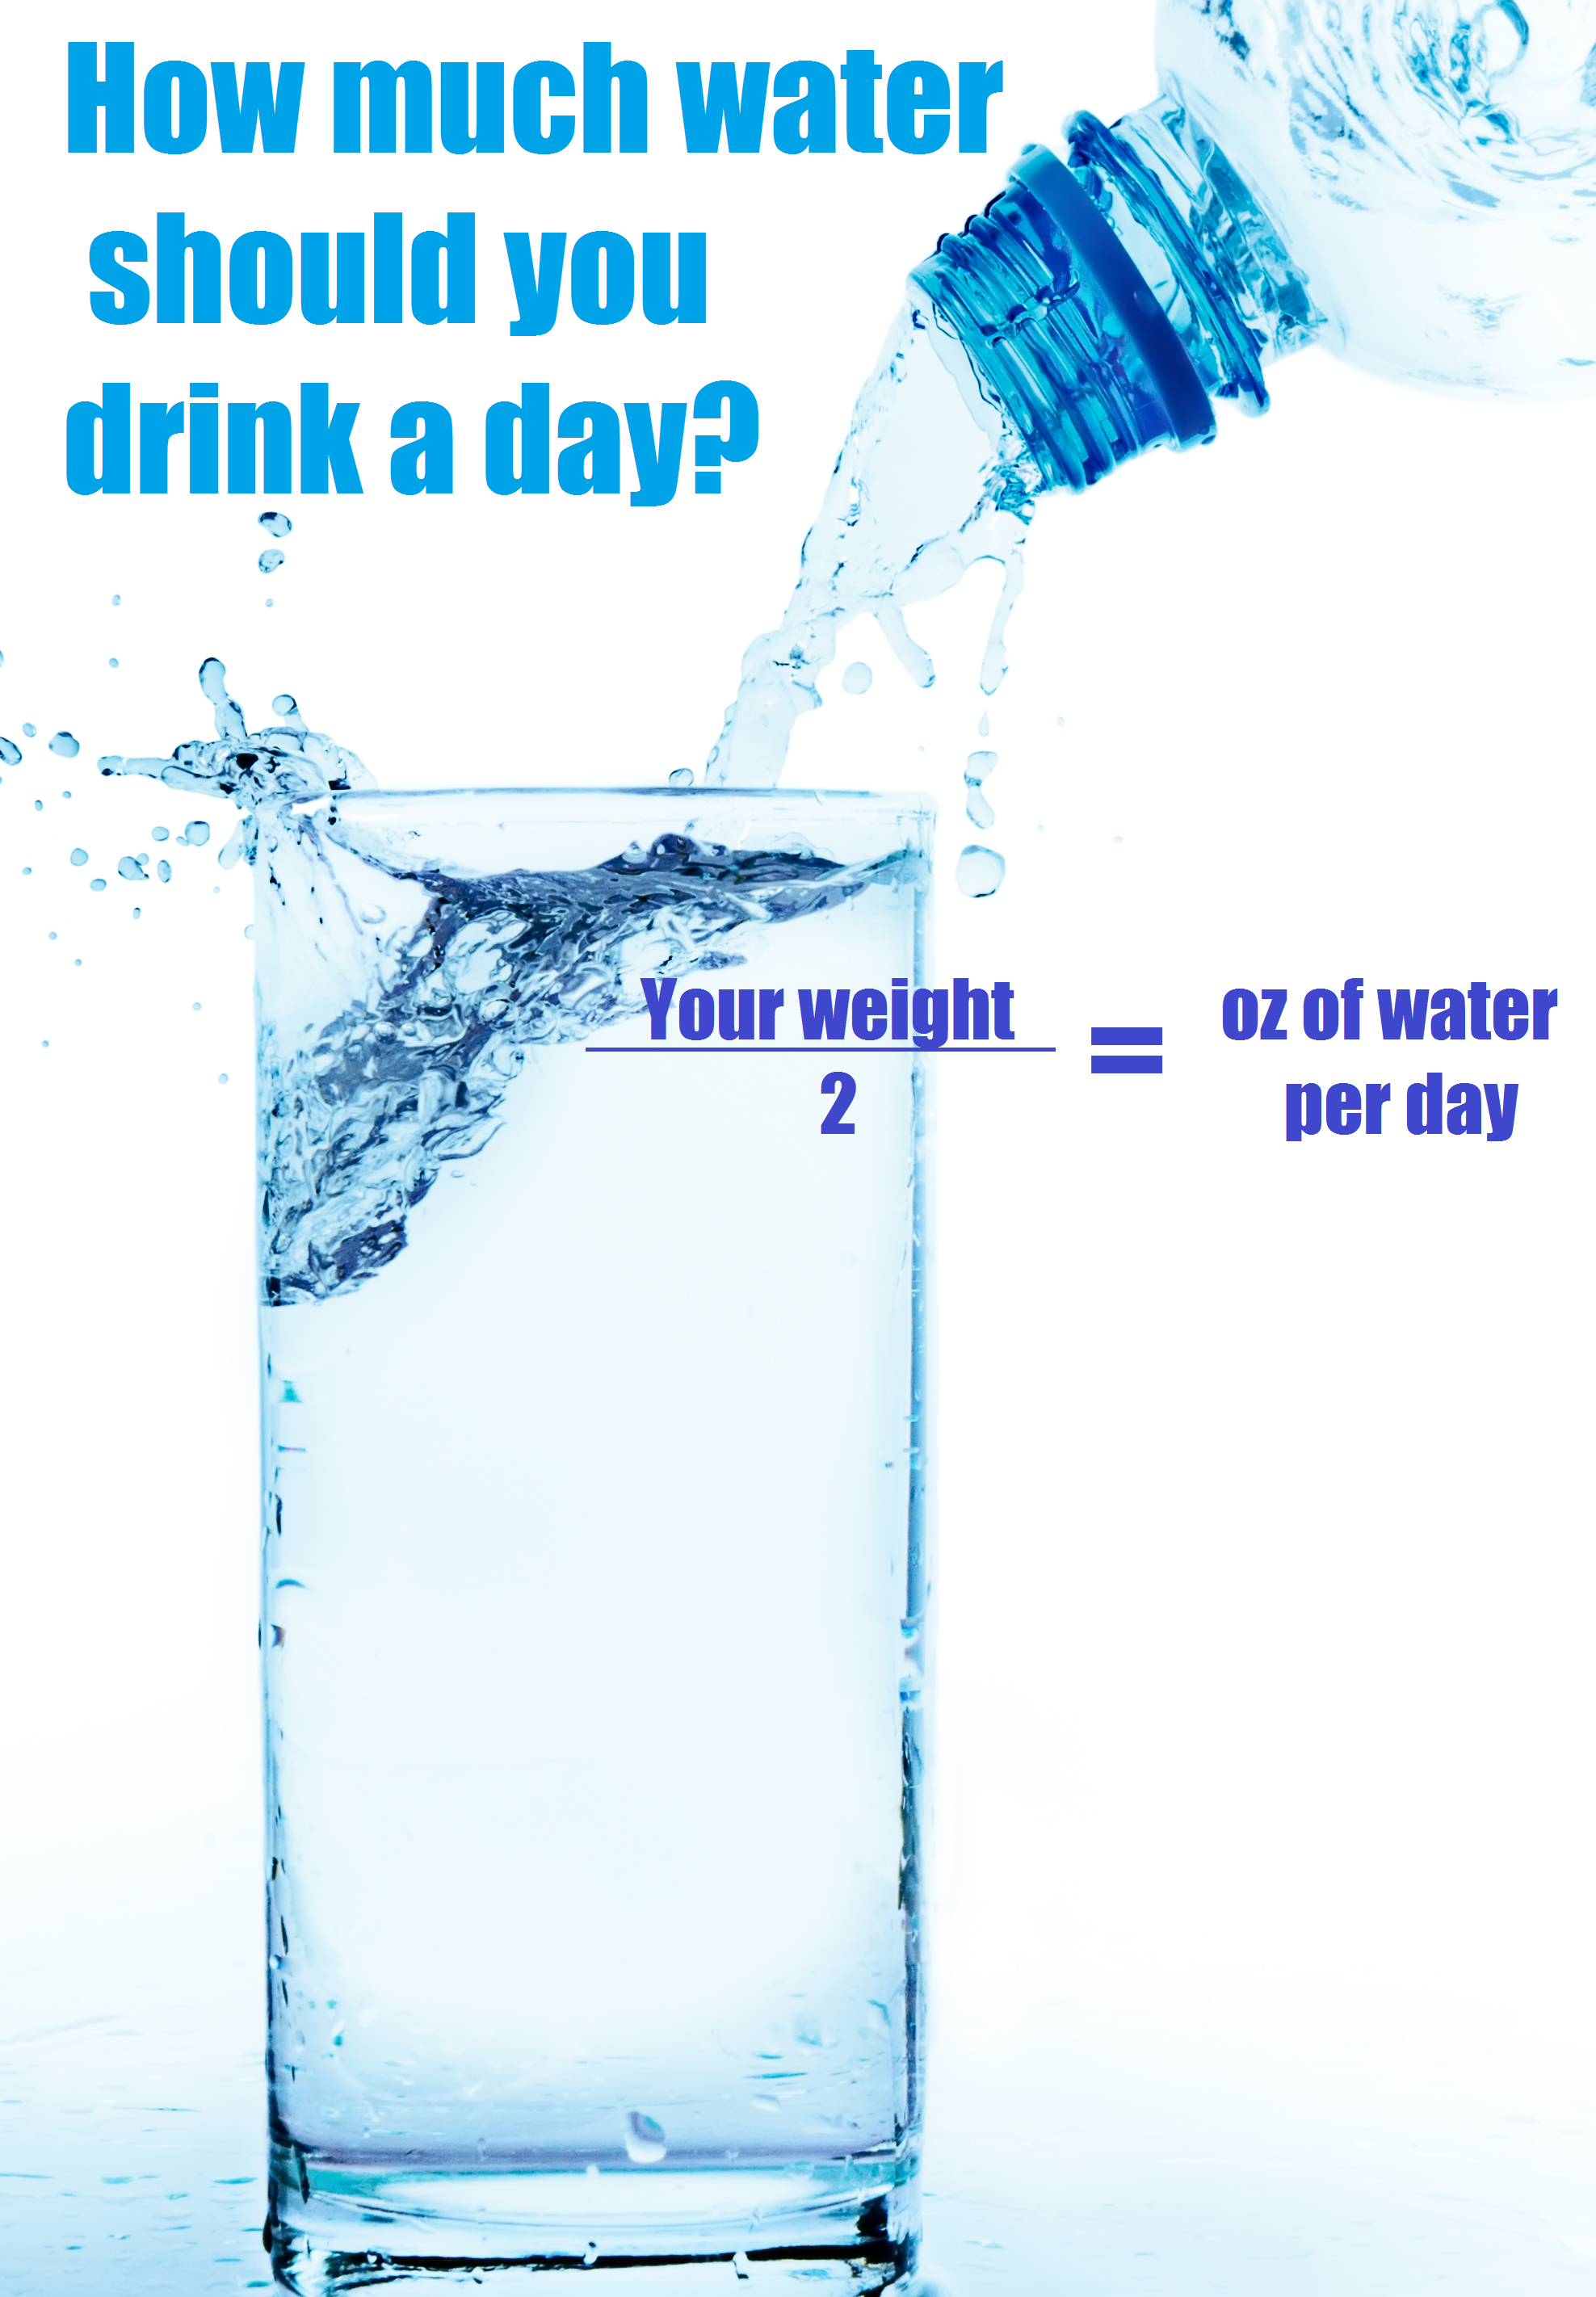 how much water should you drink a day? how much you weigh and divide